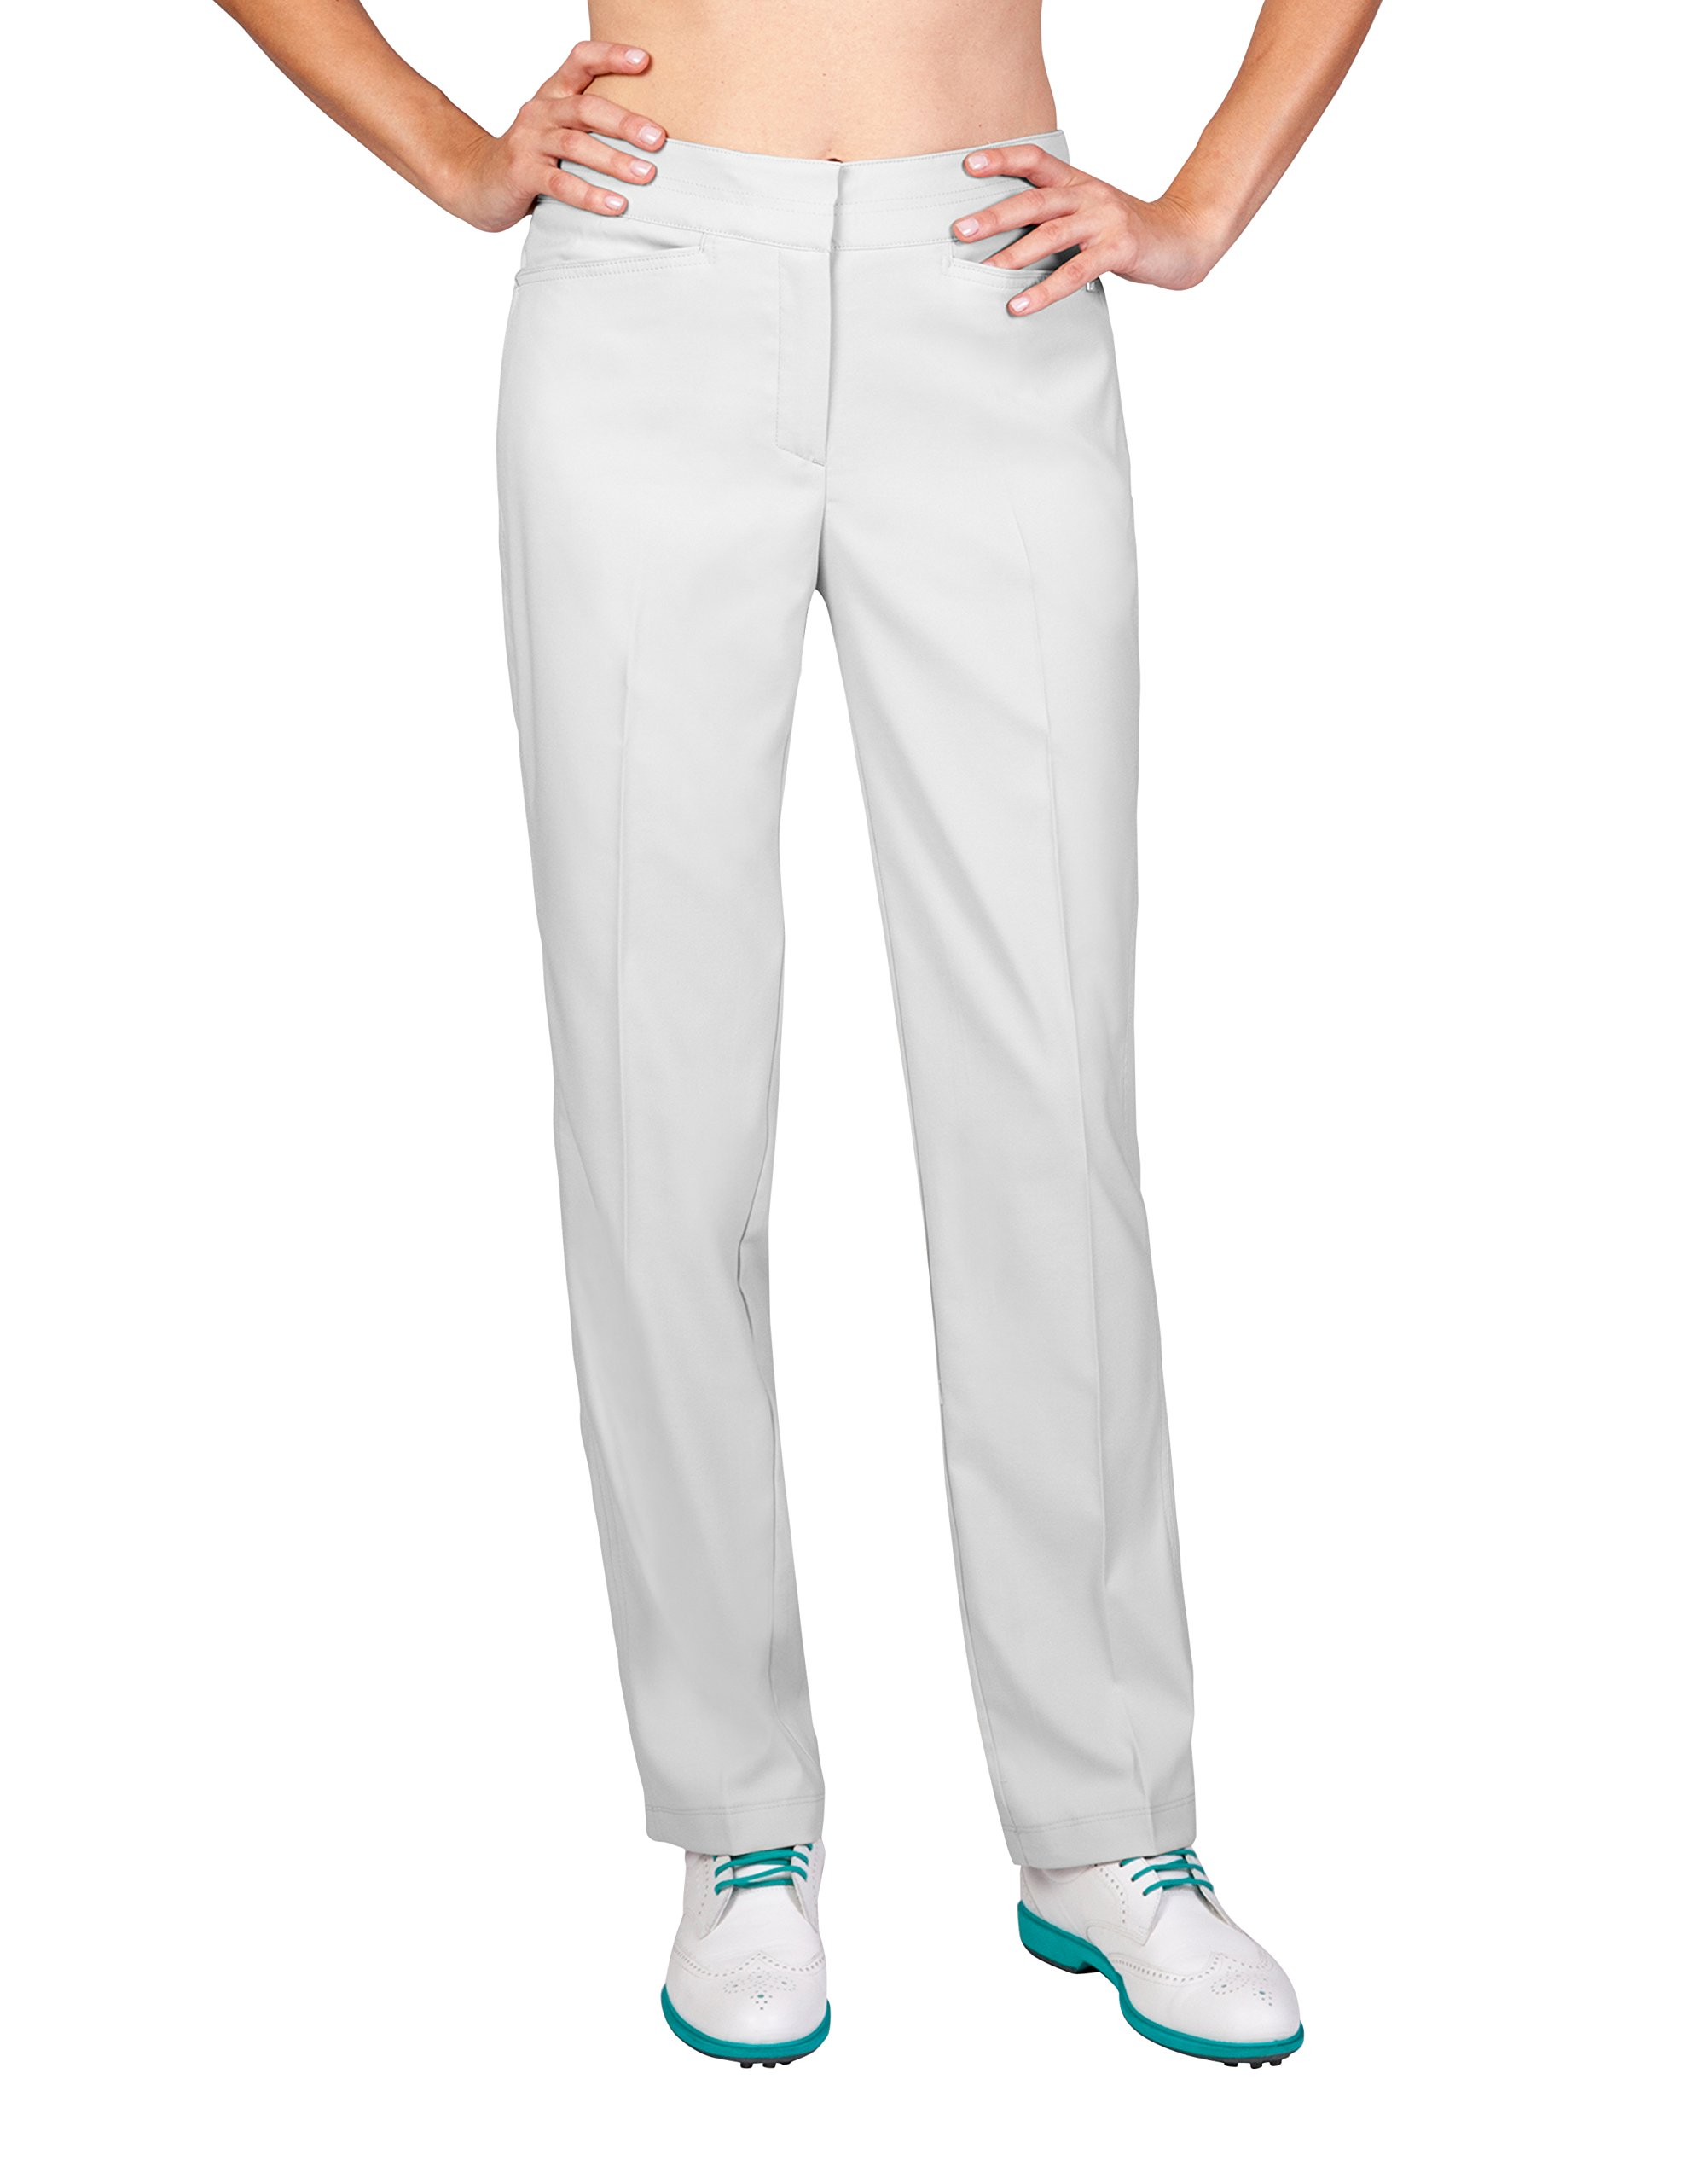 Tail Activewear Women's Classic Pant 4 Feather Grey